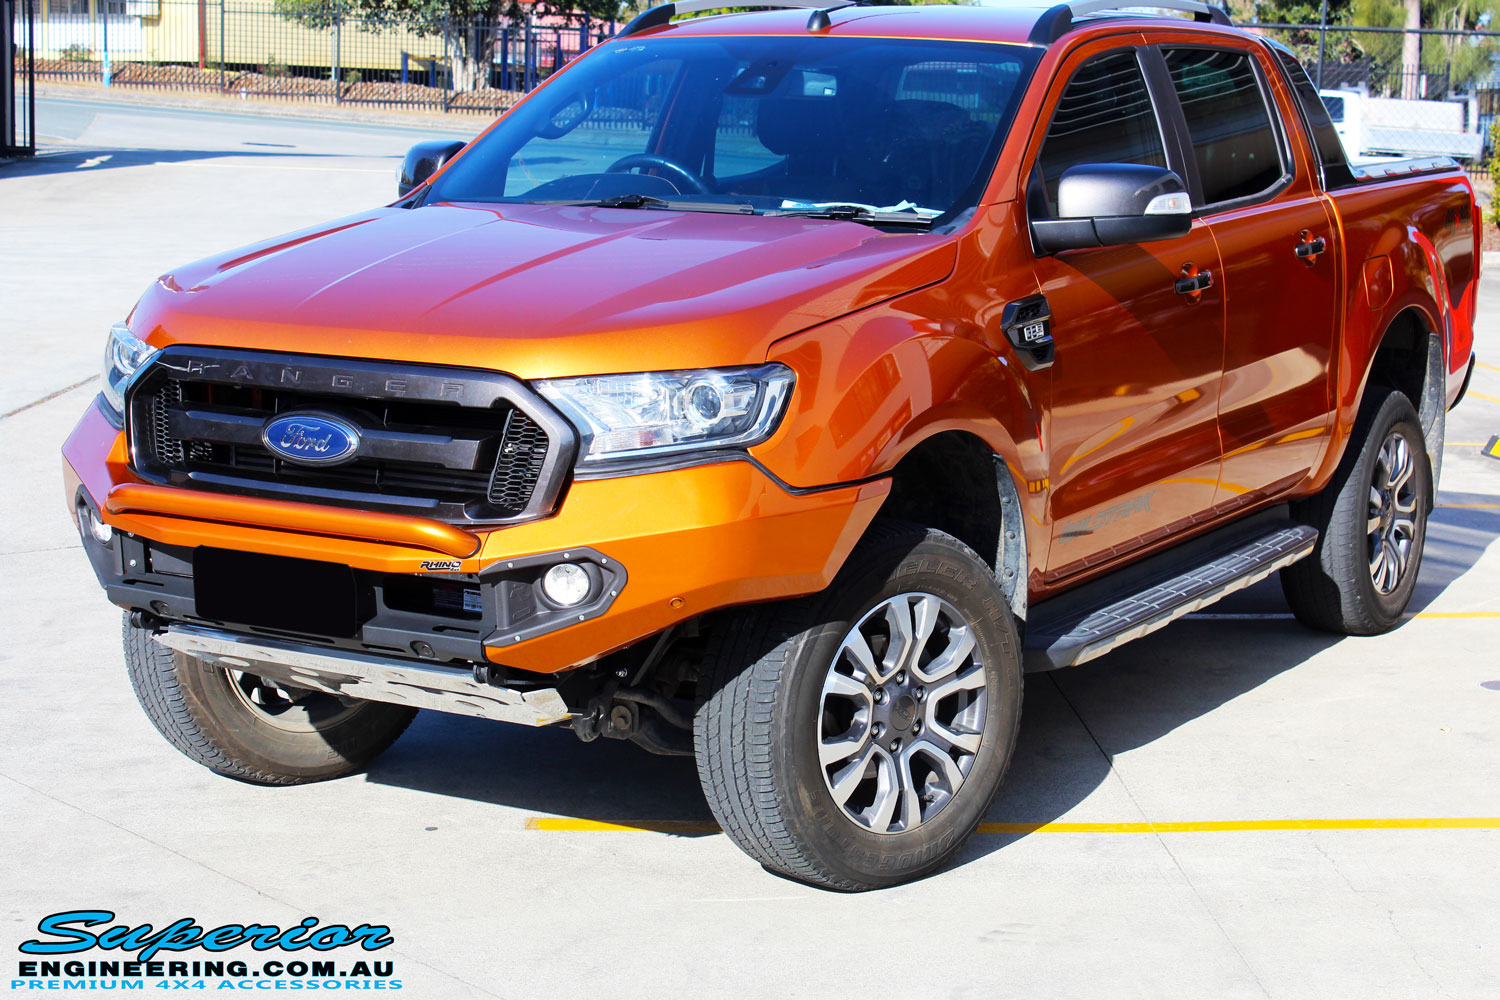 "Left front side view of a Orange Ford PXII Ranger Dual Cab after fitment with a Rhino 4x4 Evolution 3D Winch Bar & Legendex 409 Stainless Steel 3"" Inch Exhaust + Power Command Module"